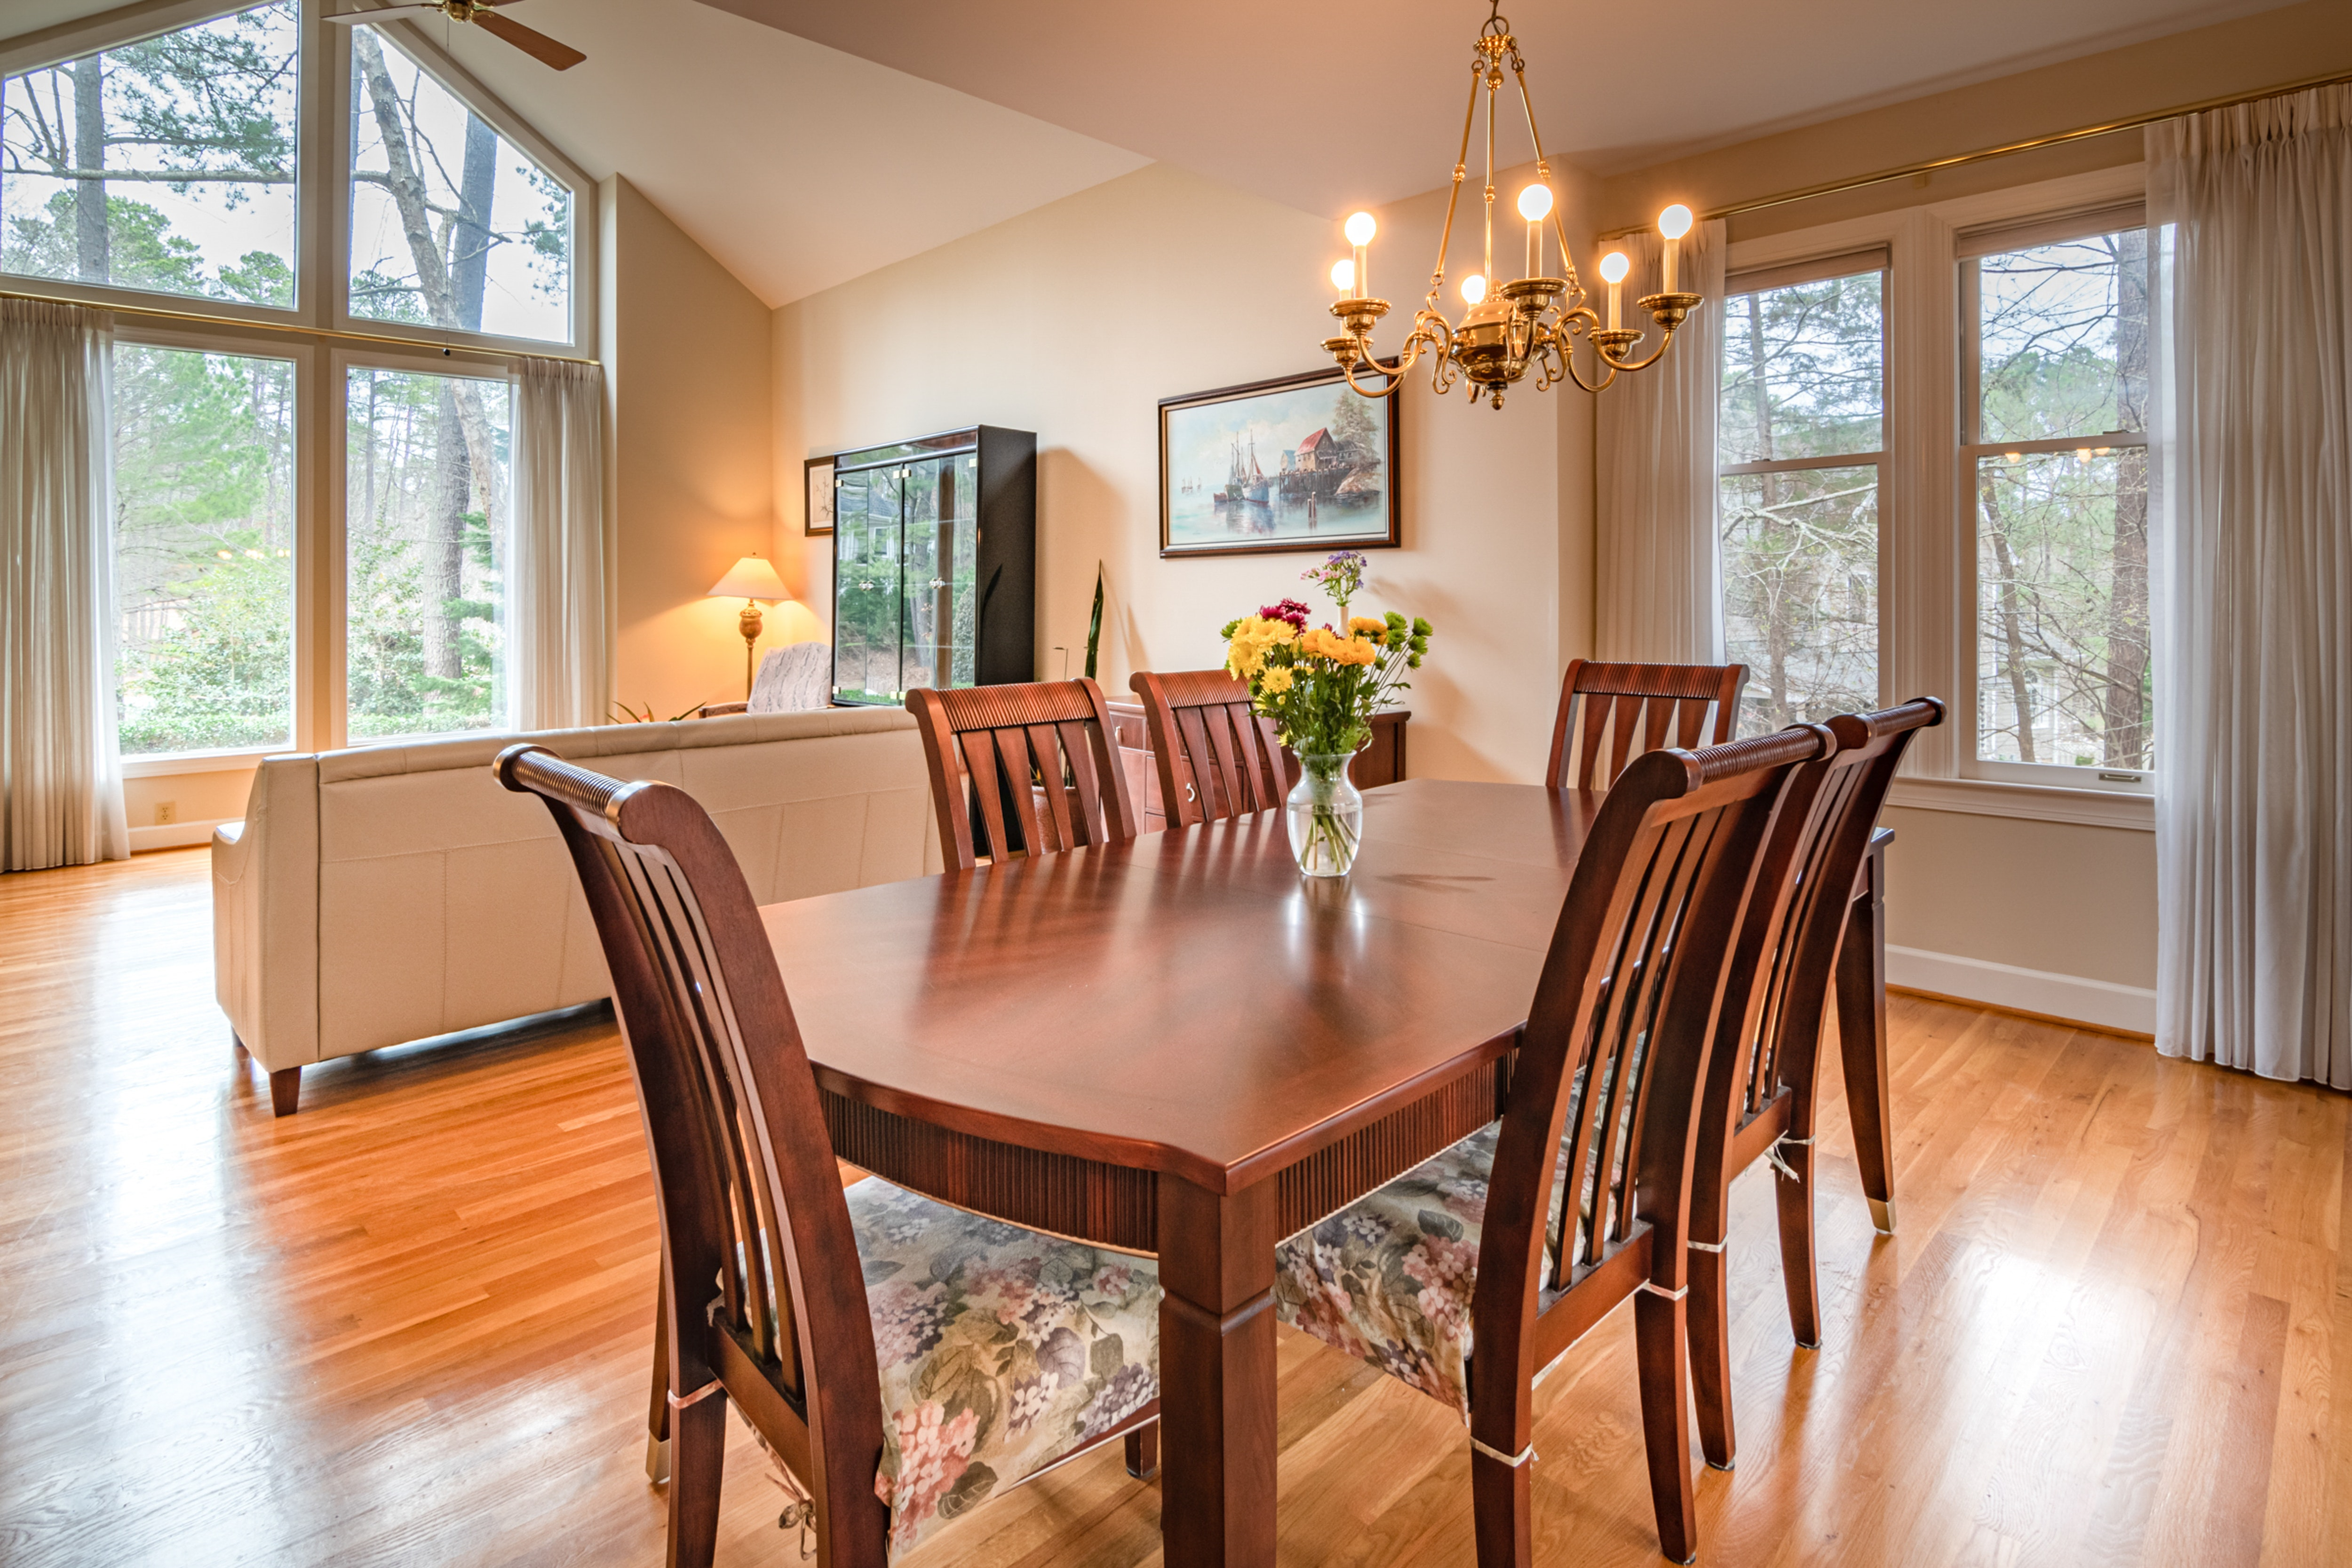 formal dining room with wooden table and 6 wooden chairs